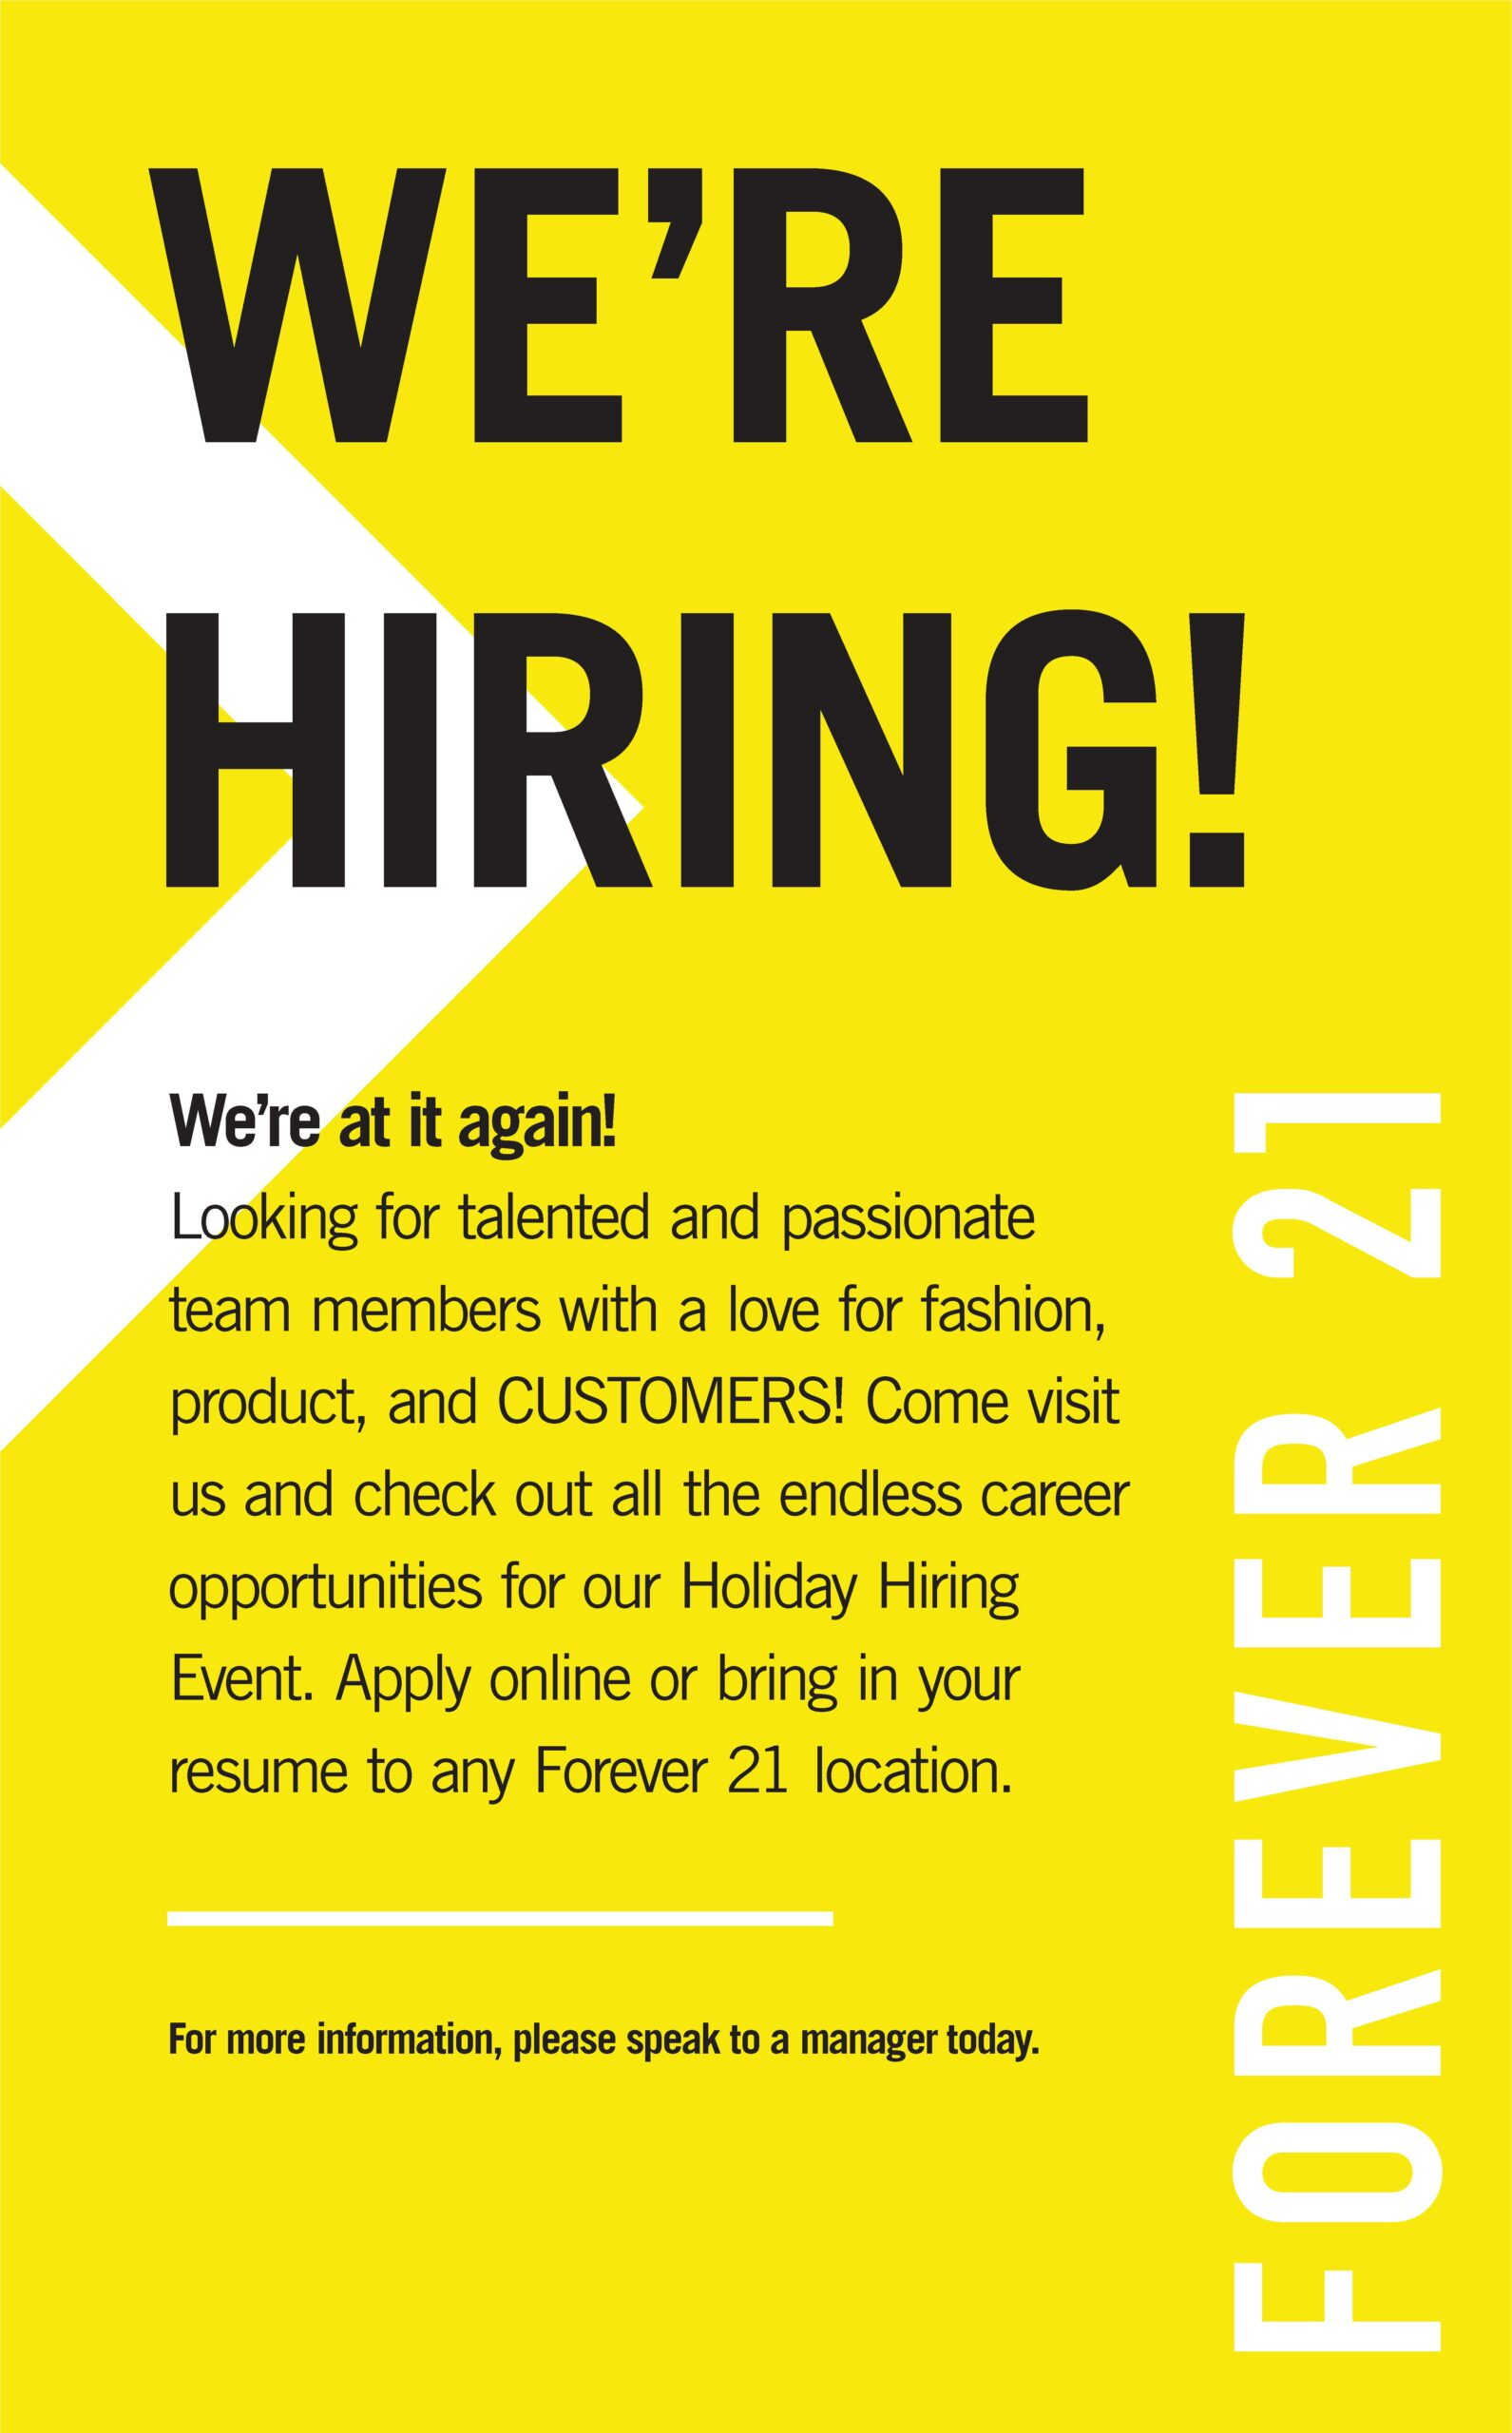 Forever 21 Is Hiring!